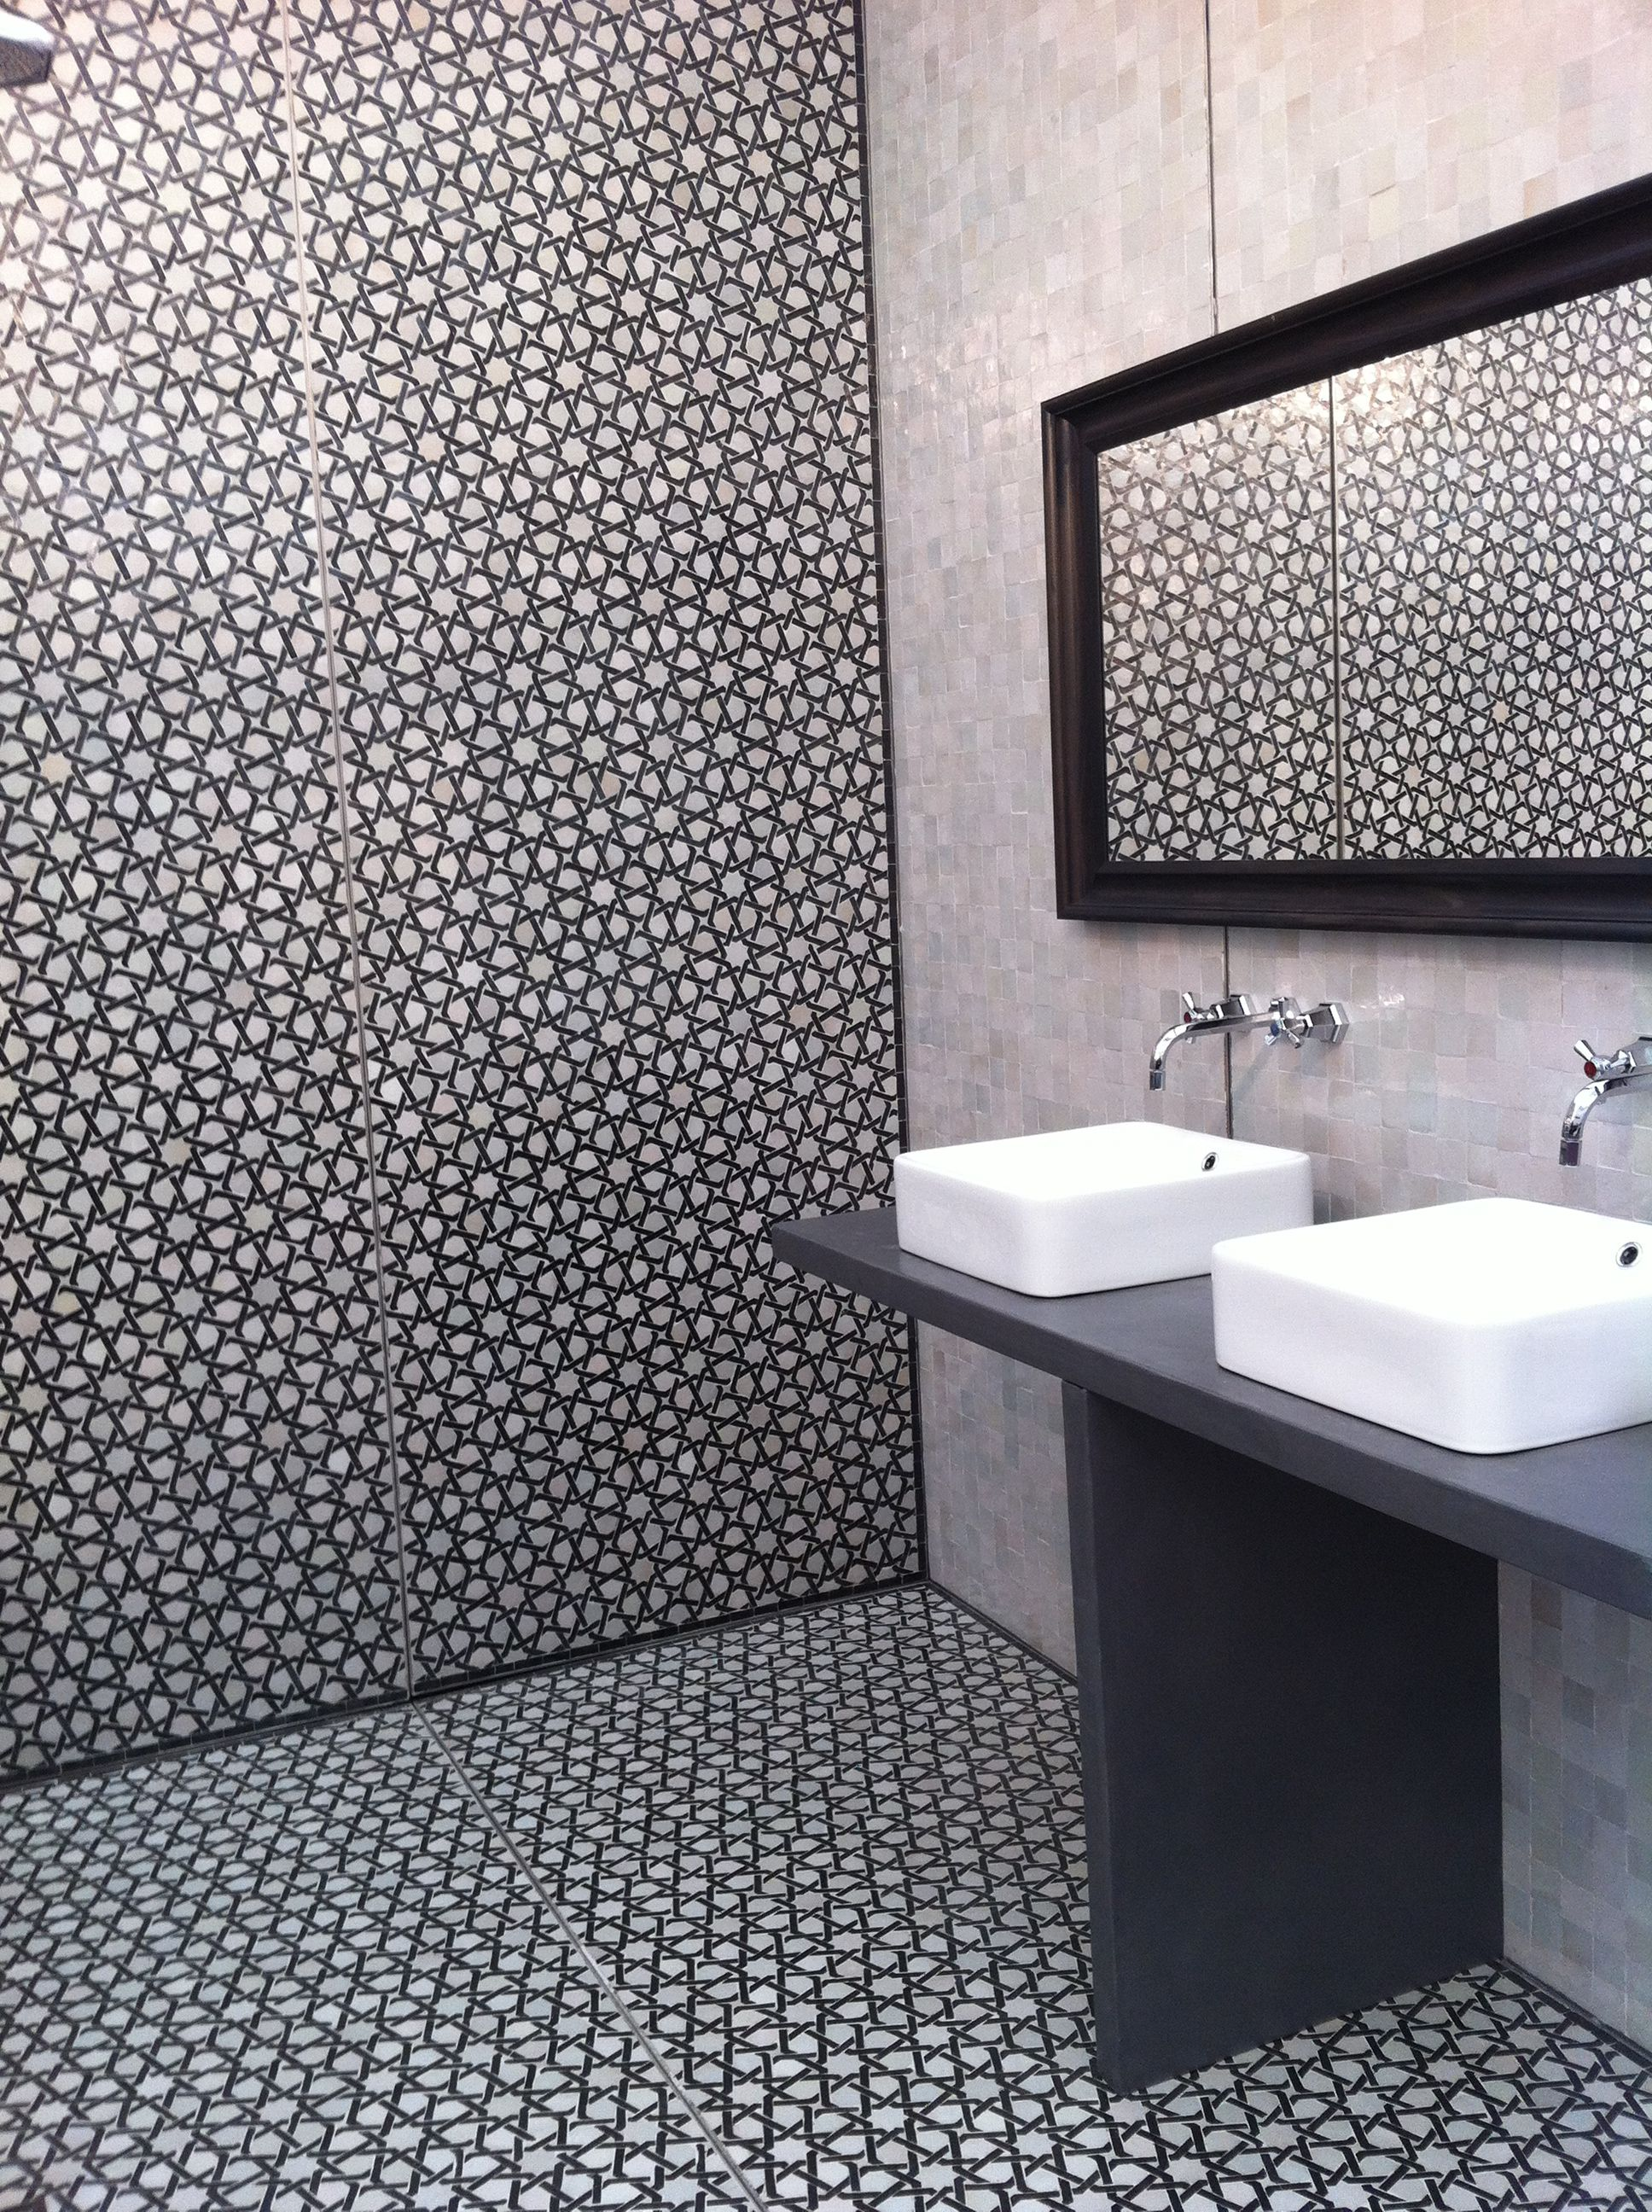 Monochrome Moroccan Style Bathroom Tiles Tile Styling